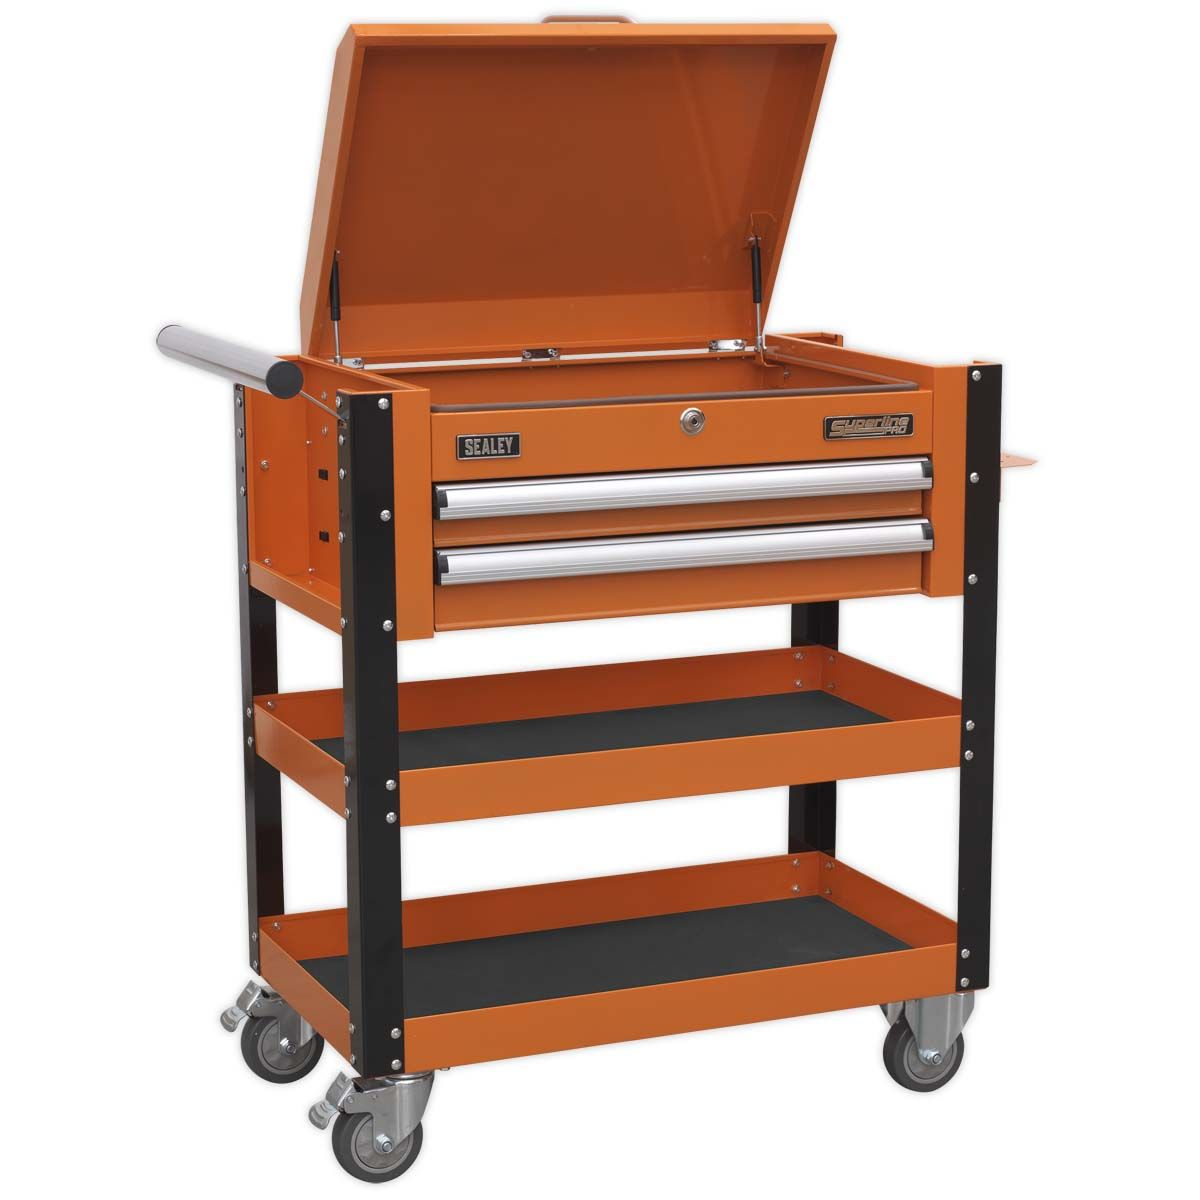 Sealey Heavy-Duty Mobile Tool & Parts Trolley 2 Drawers & Lockable Top - Orange